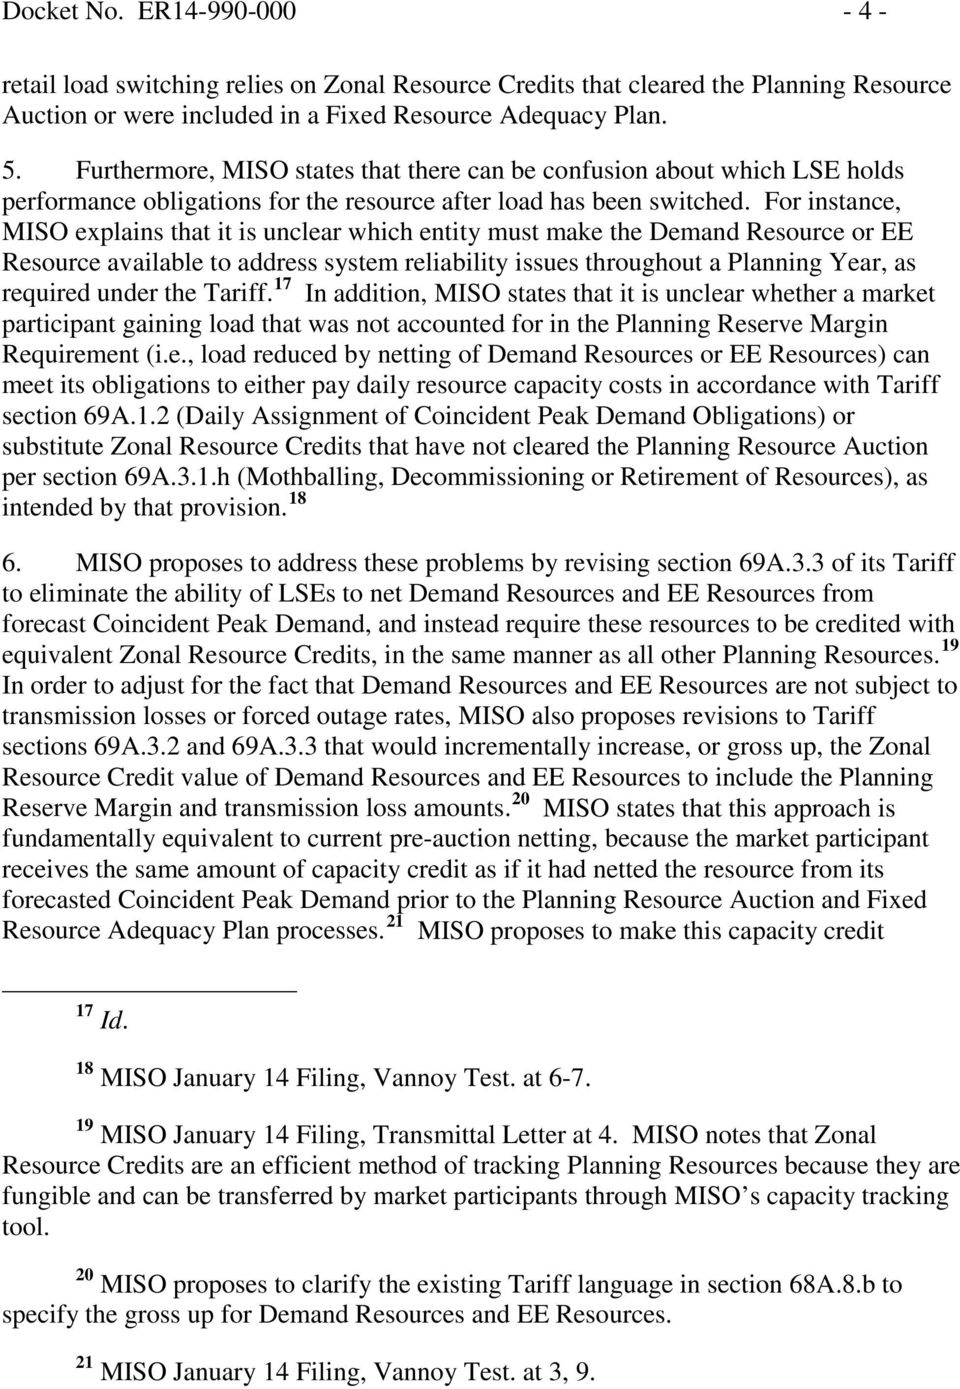 For instance, MISO explains that it is unclear which entity must make the Demand Resource or EE Resource available to address system reliability issues throughout a Planning Year, as required under